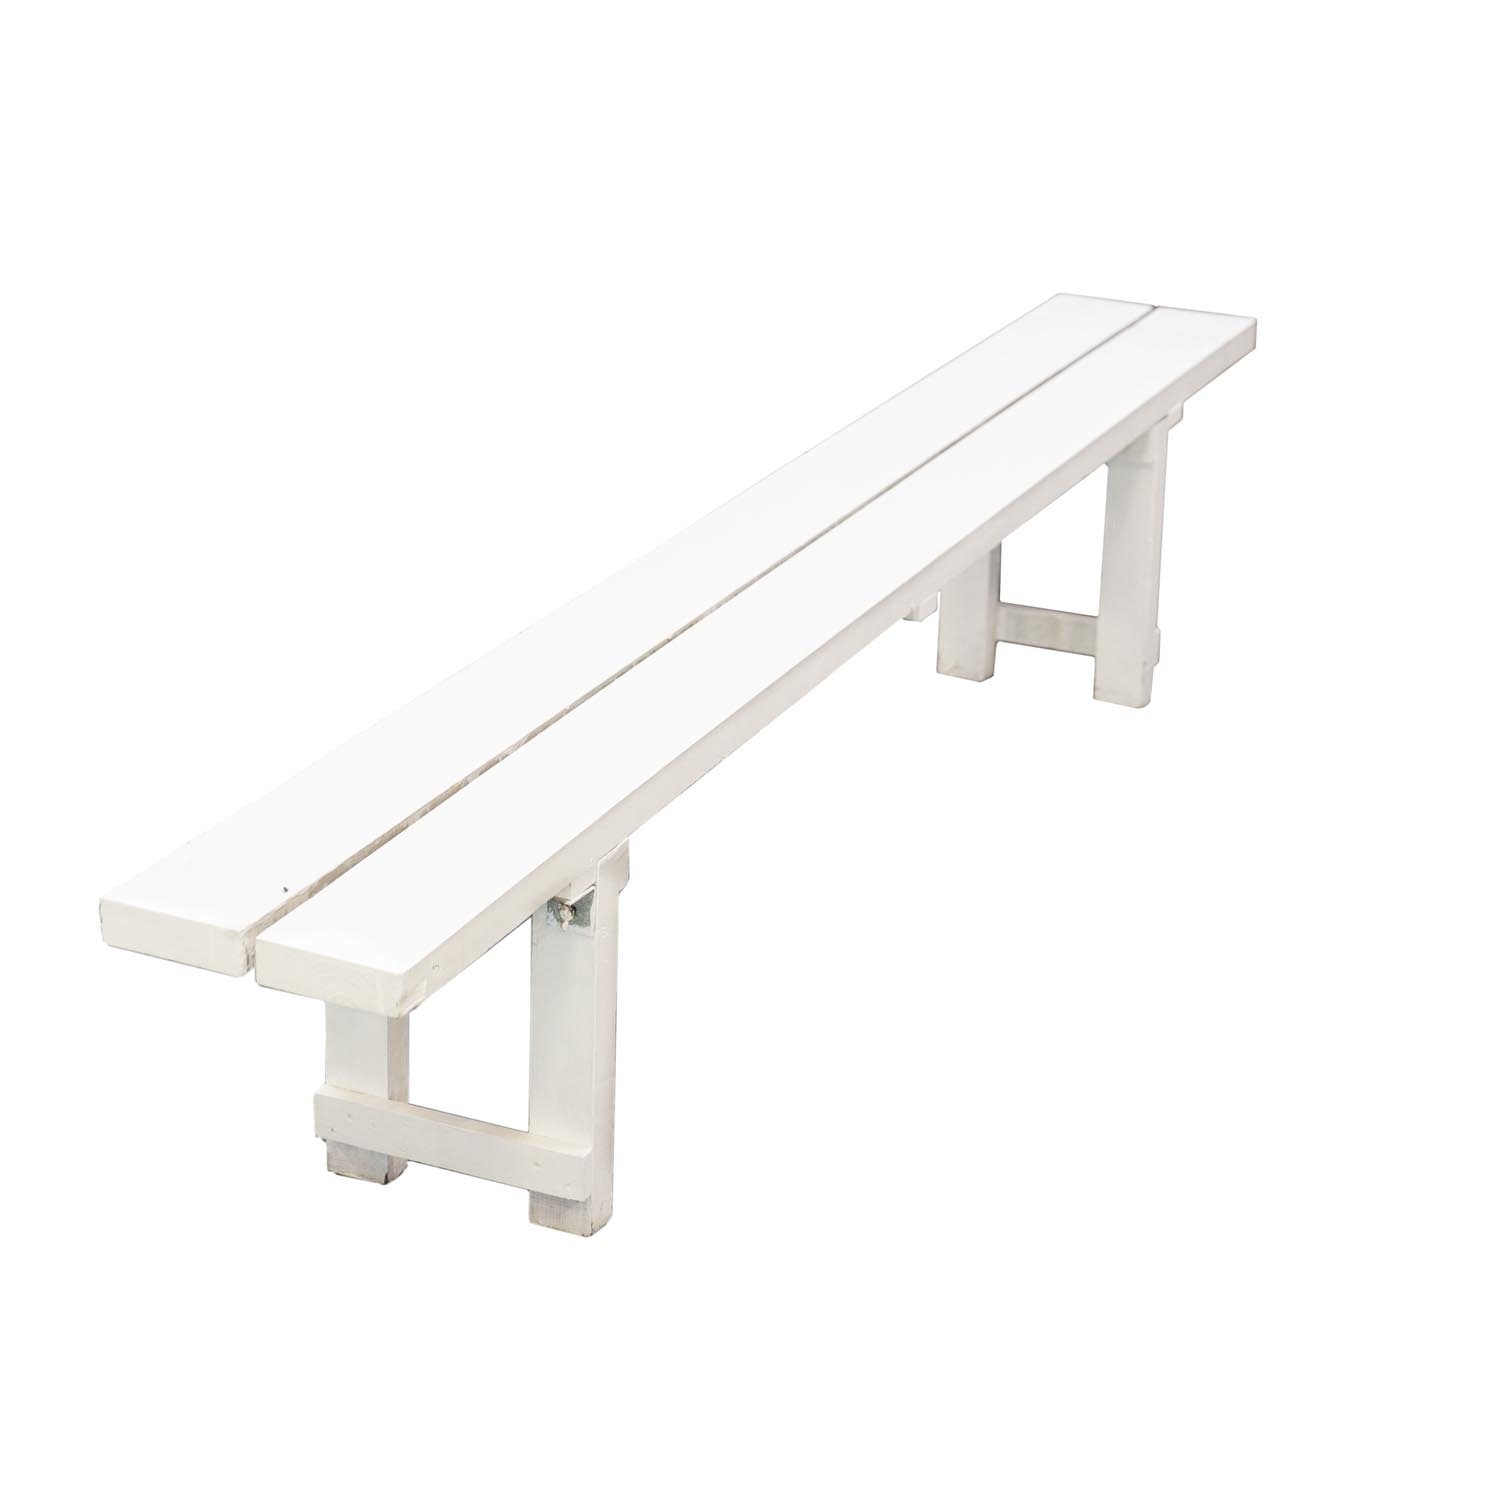 Wondrous White Wooden Bench For Hire Pdpeps Interior Chair Design Pdpepsorg